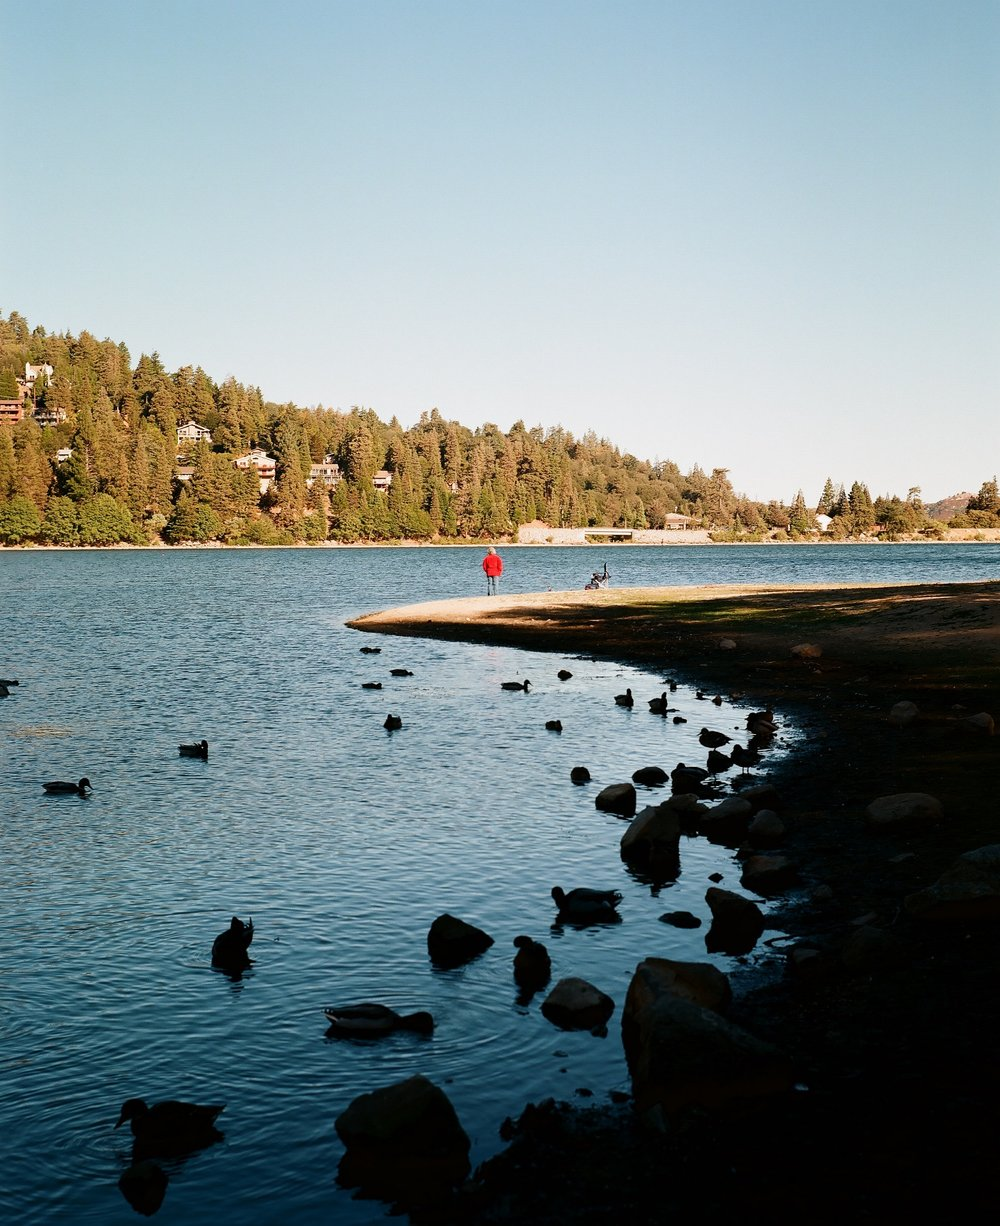 Crestline, California_Mamiya Super 23, 3.5f=100m_Kyle Everett Smith_5.jpg